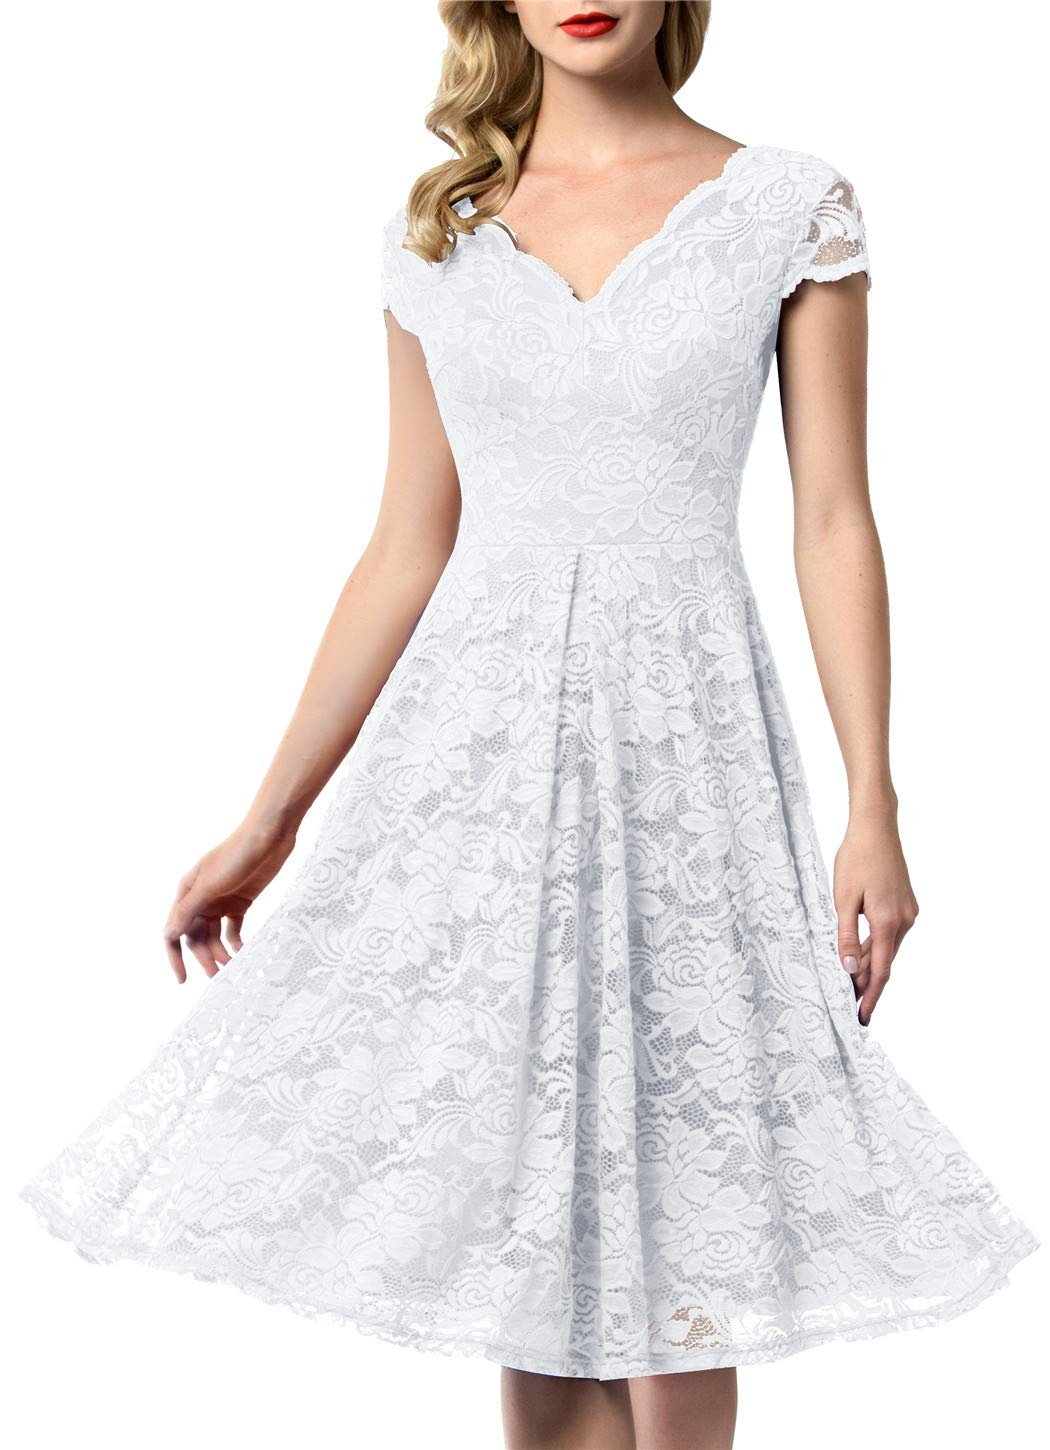 White Dress - Women's Elegant Round Neck Short Sleeves V-Back Floral Lace Cocktail Party A Line Dress 910